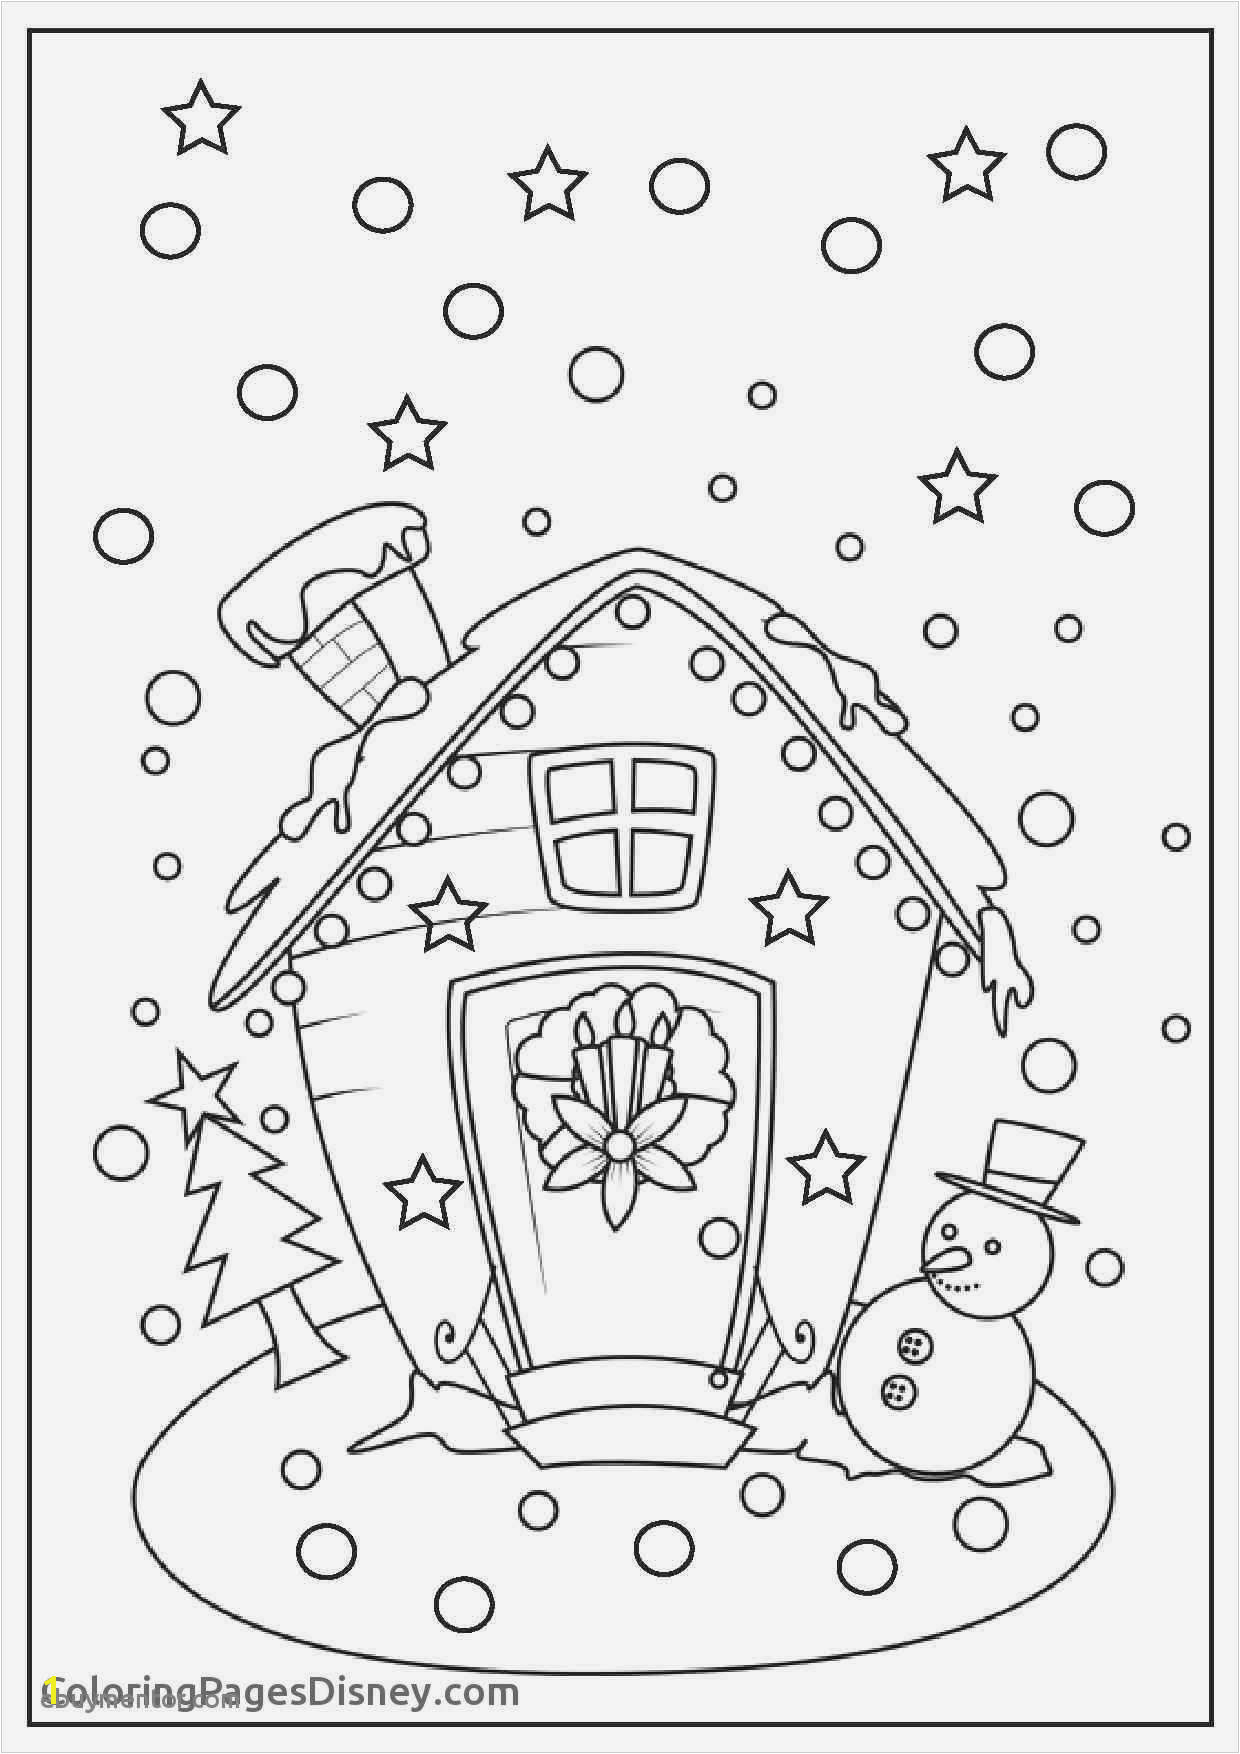 - Weed Coloring Pages Outstanding Cool Coloring Pages For Teens